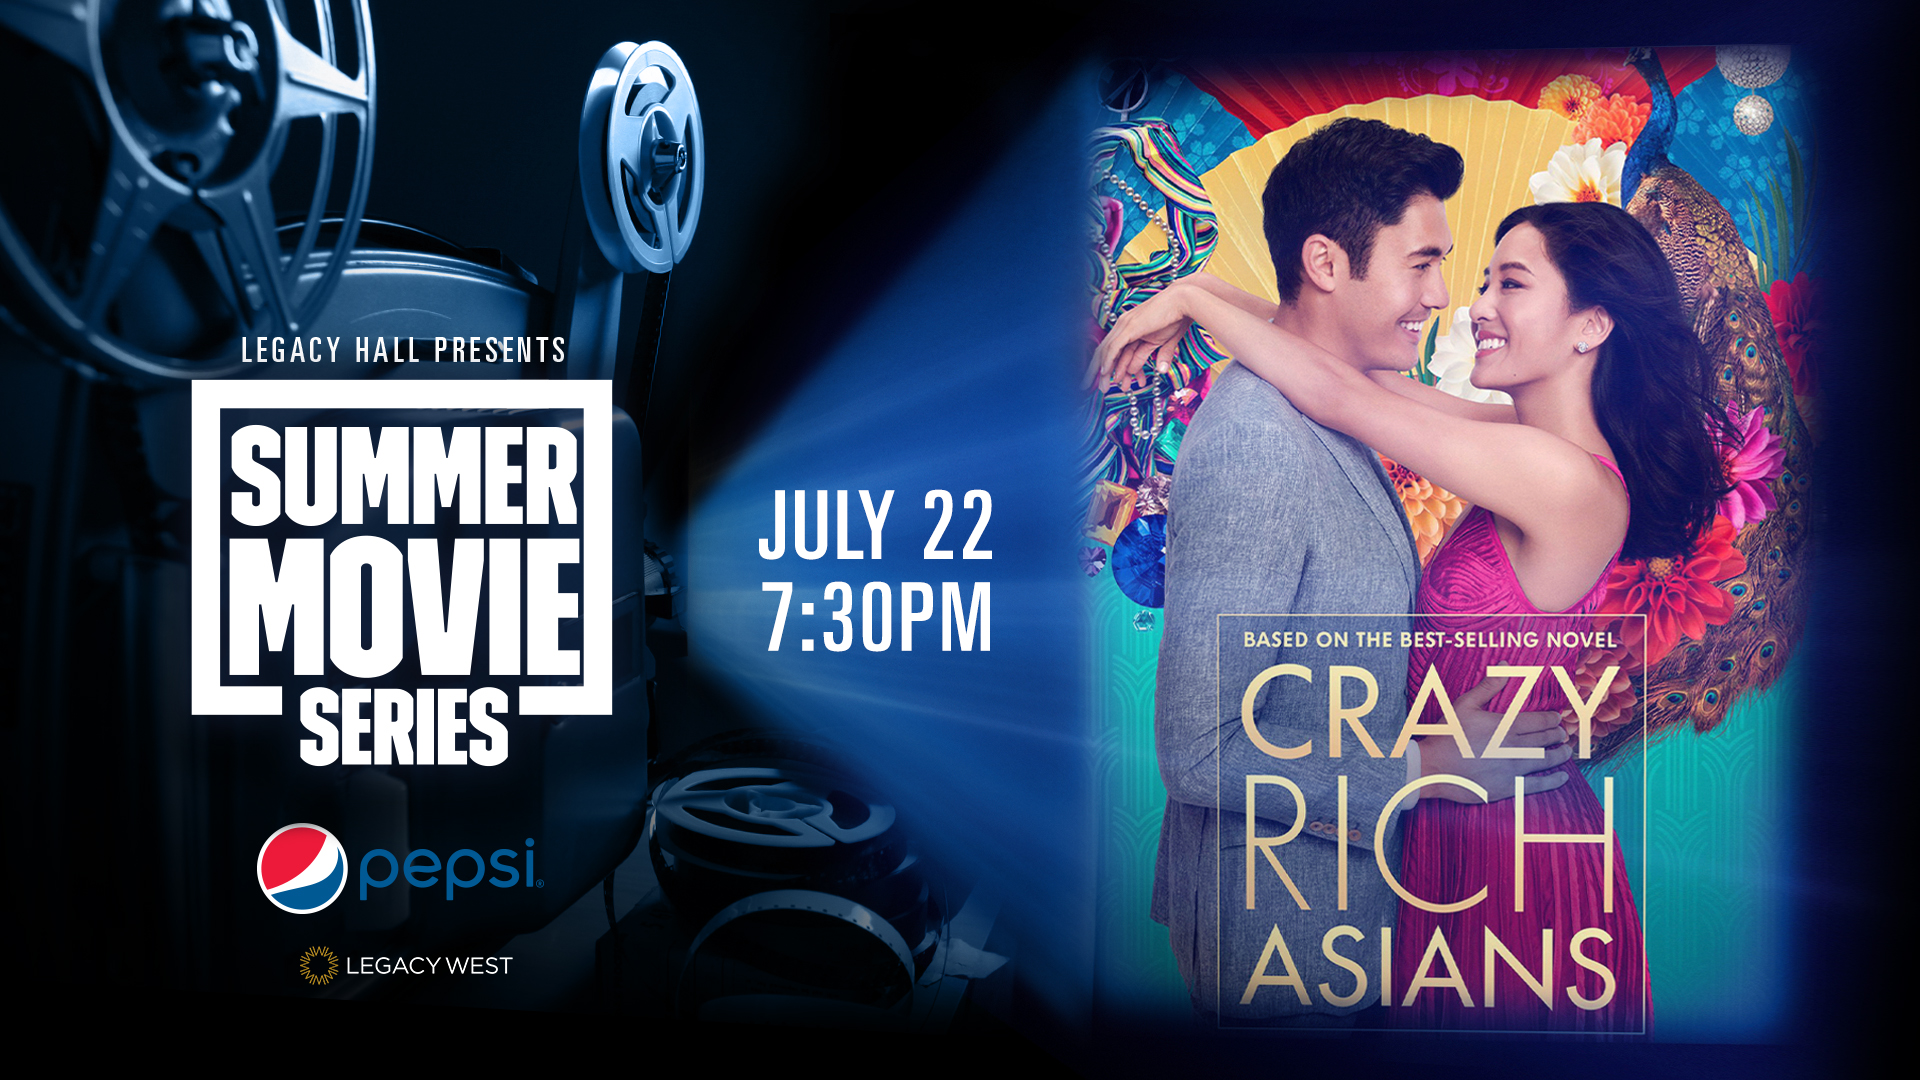 Promo image of Pepsi Summer Movie Series: Crazy Rich Asians